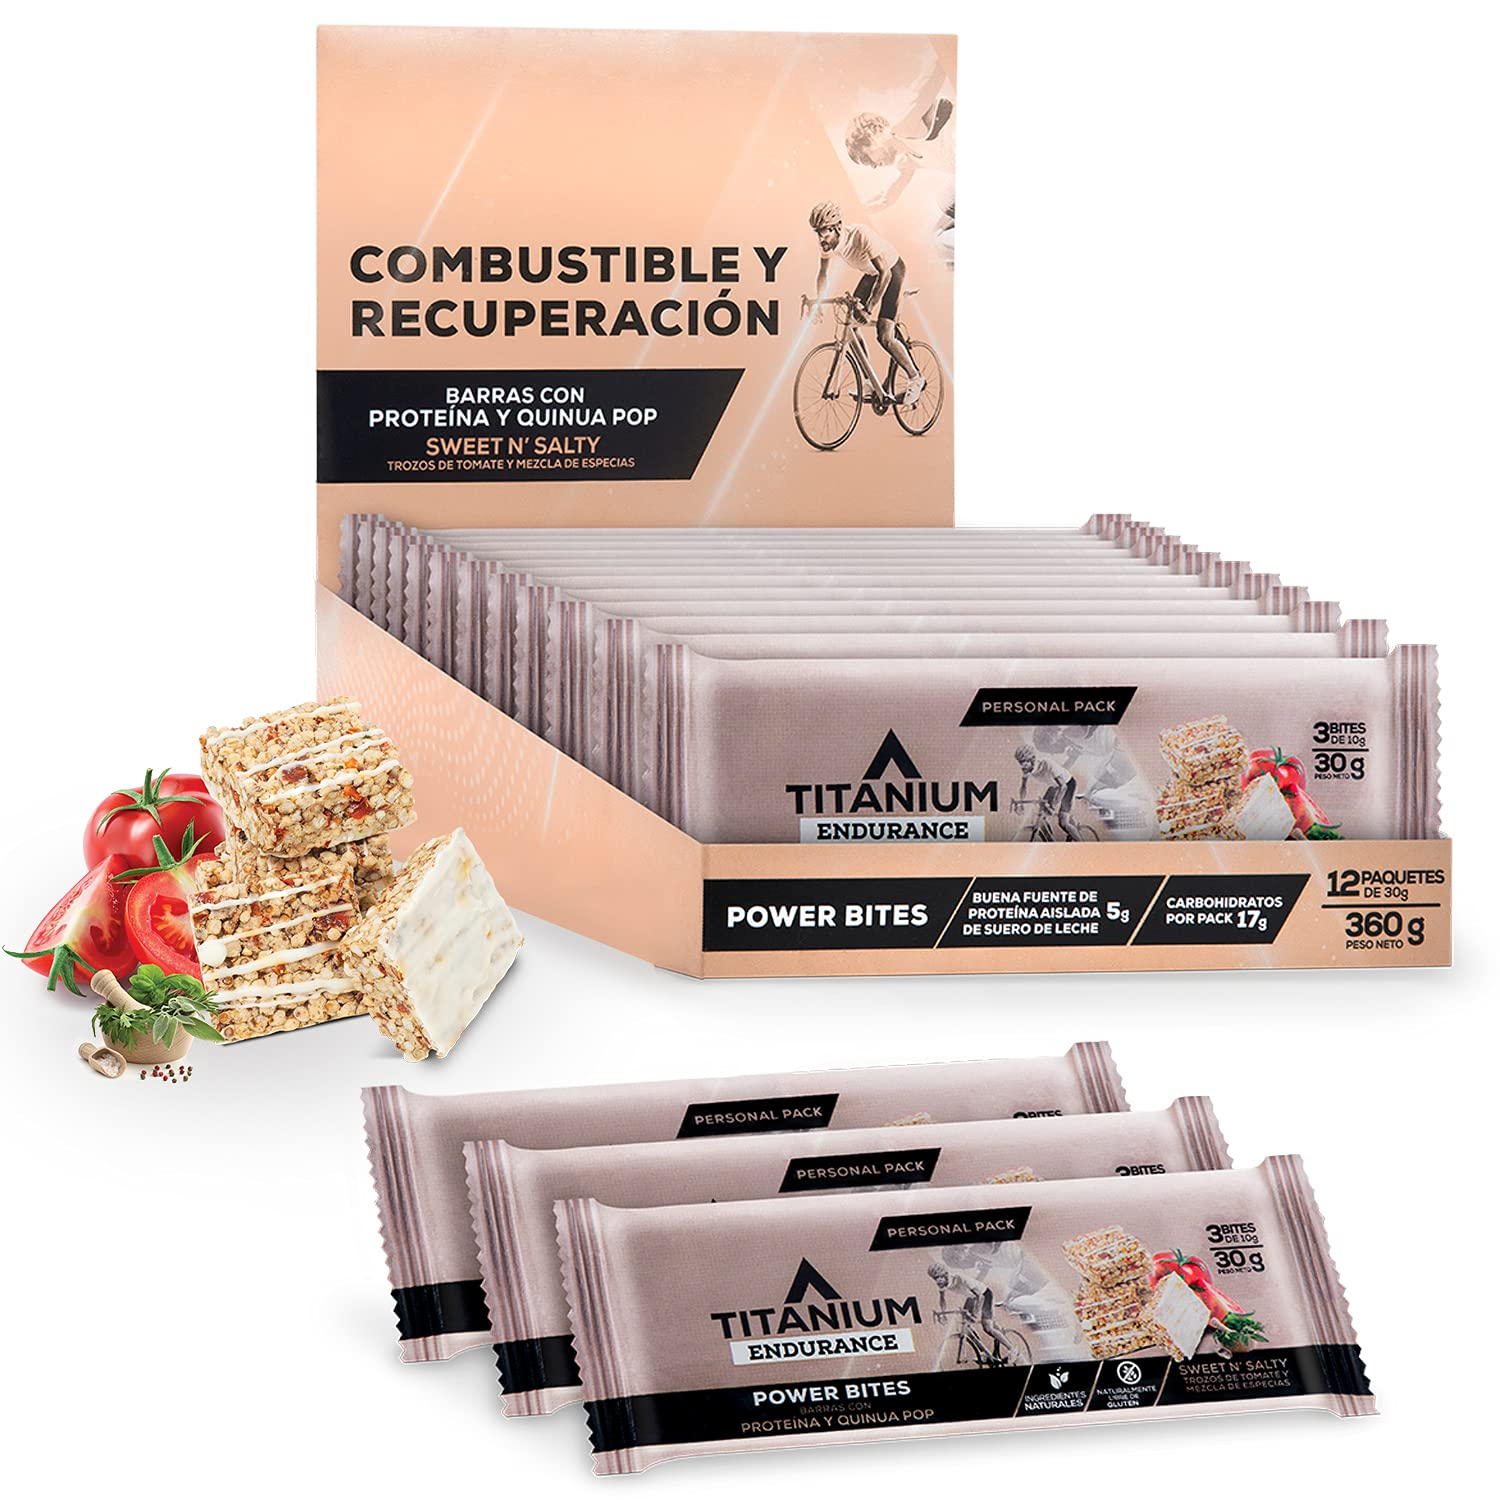 TITANIUM Granola Energy Bars With Protein Made Of Quinoa, Fruit And Chocolate - High Protein Snacks - Meal Replacement Bar - Cycling, Hiking, Camping, Backpacking Food - Sports Nutrition - Gluten Free